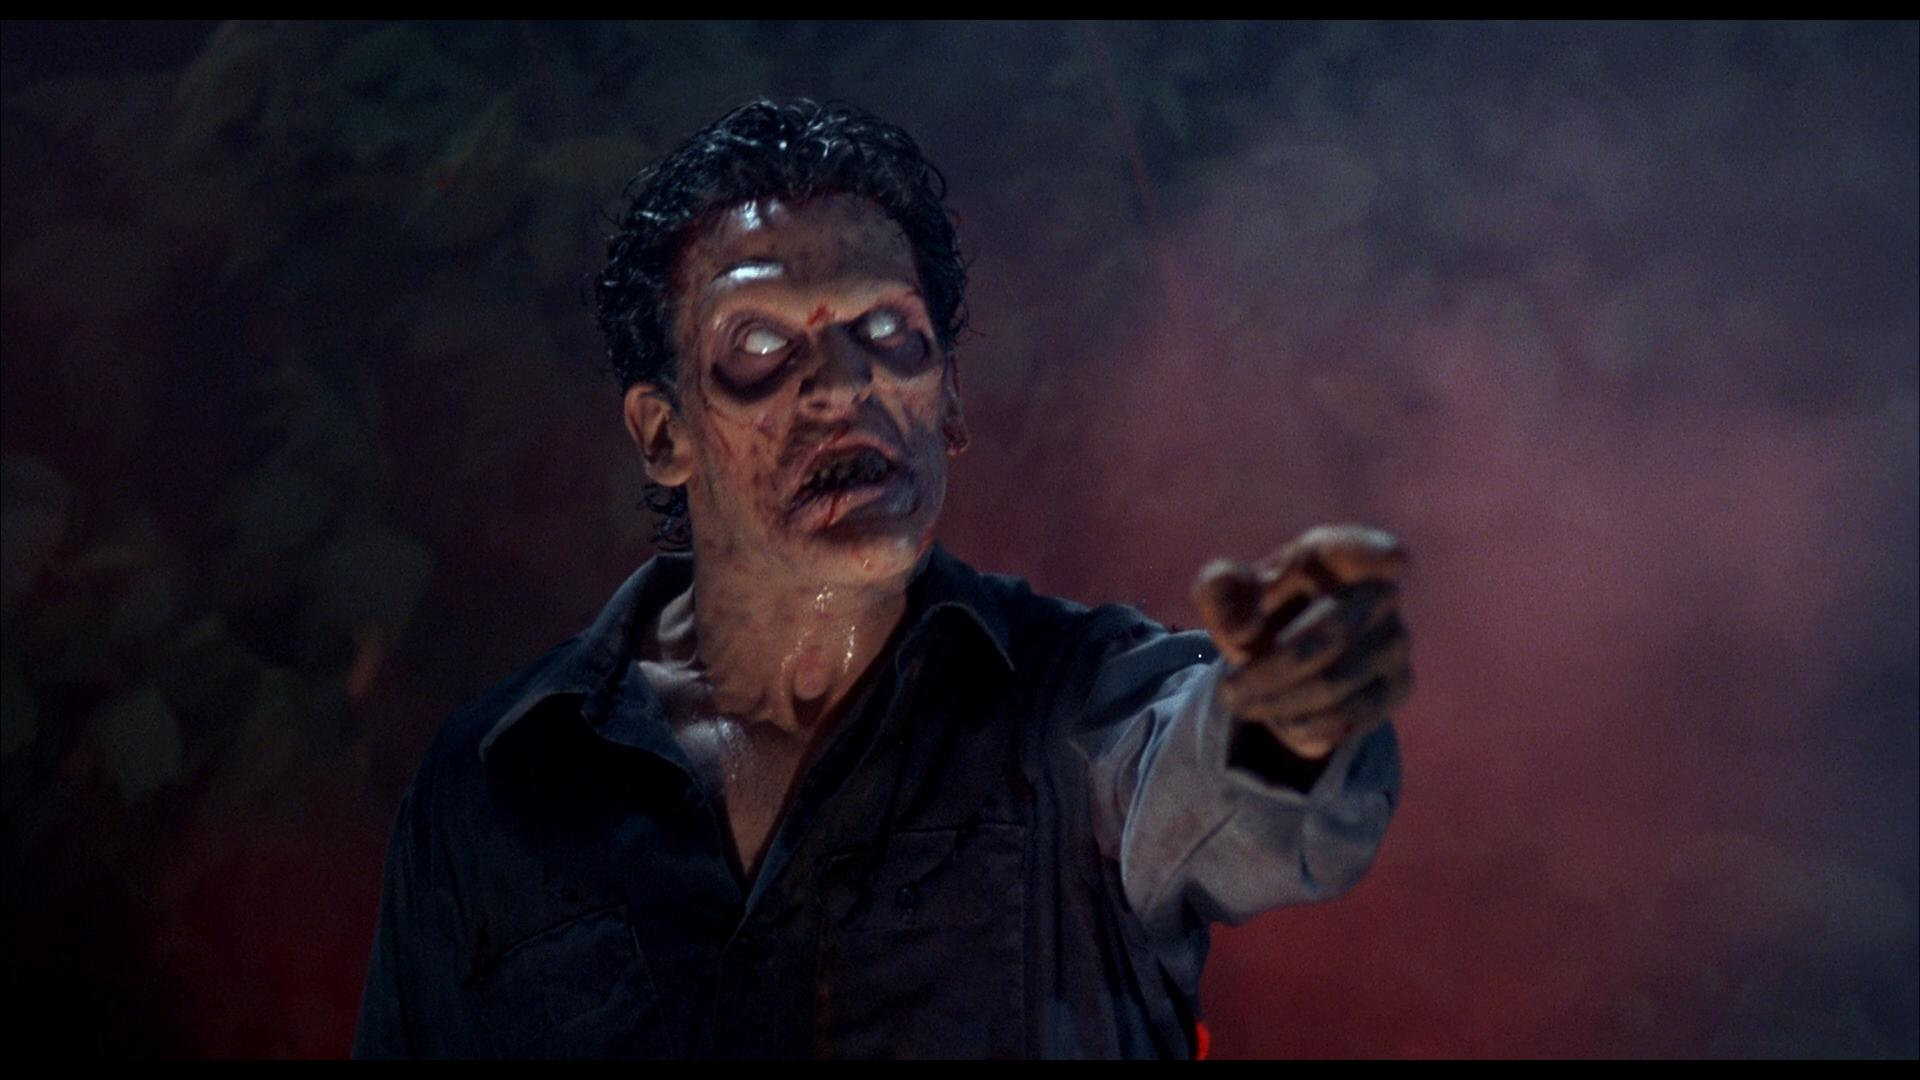 Evil Dead II Wallpaper HD Download